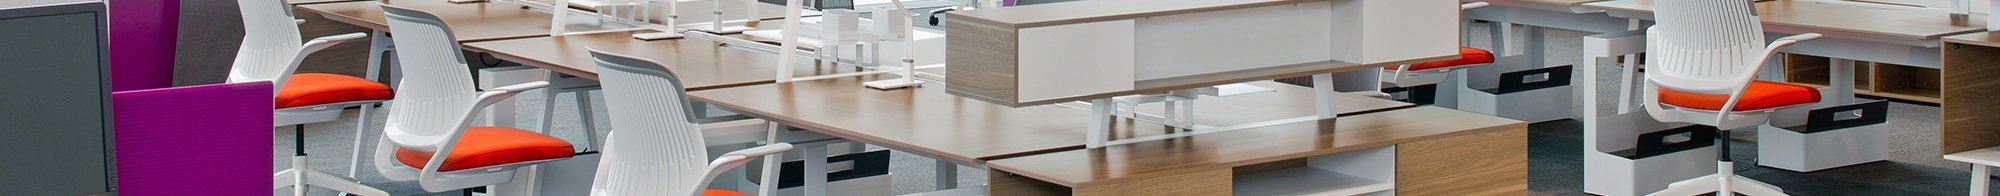 desks-category-mini.jpg